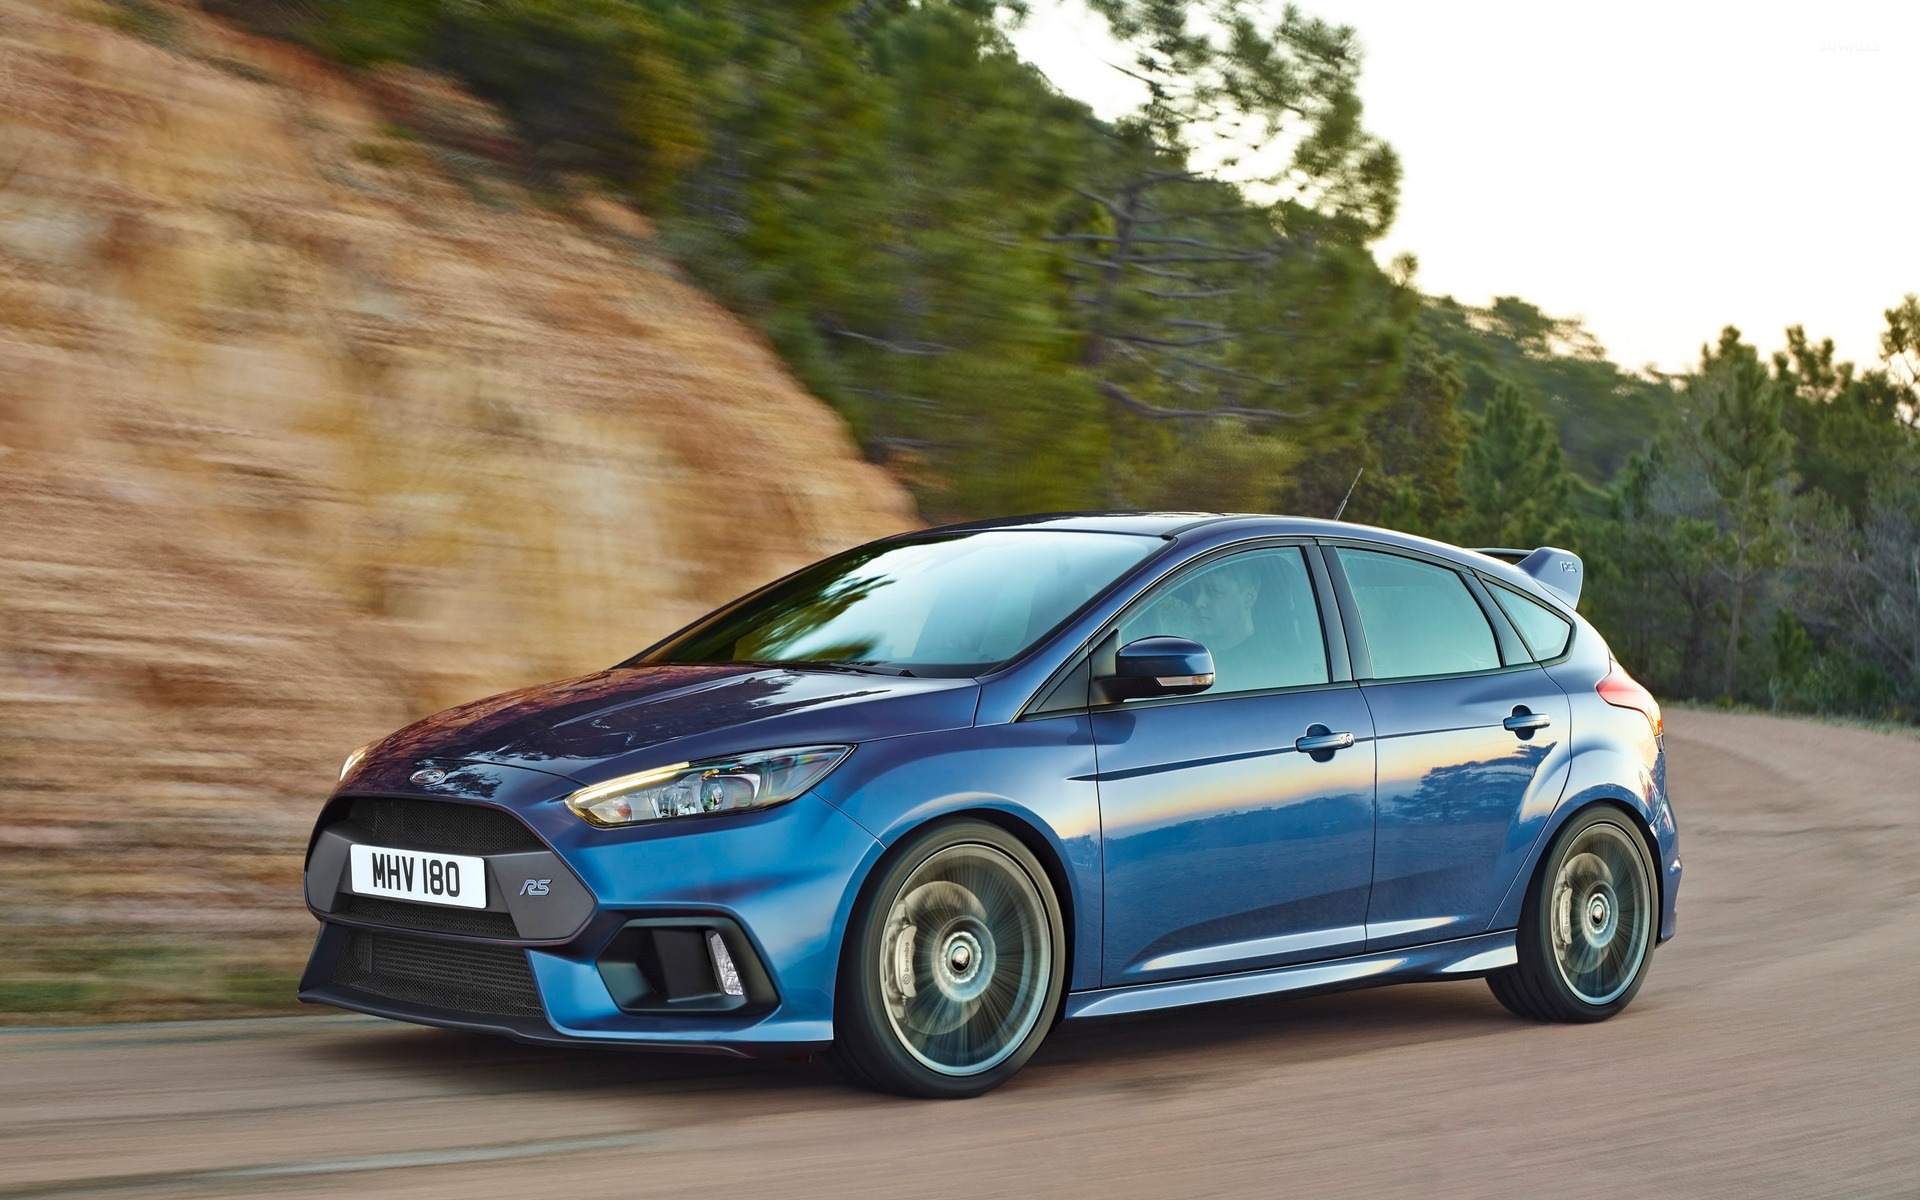 2015 Ford Focus Rs Side View Wallpaper Car Wallpapers